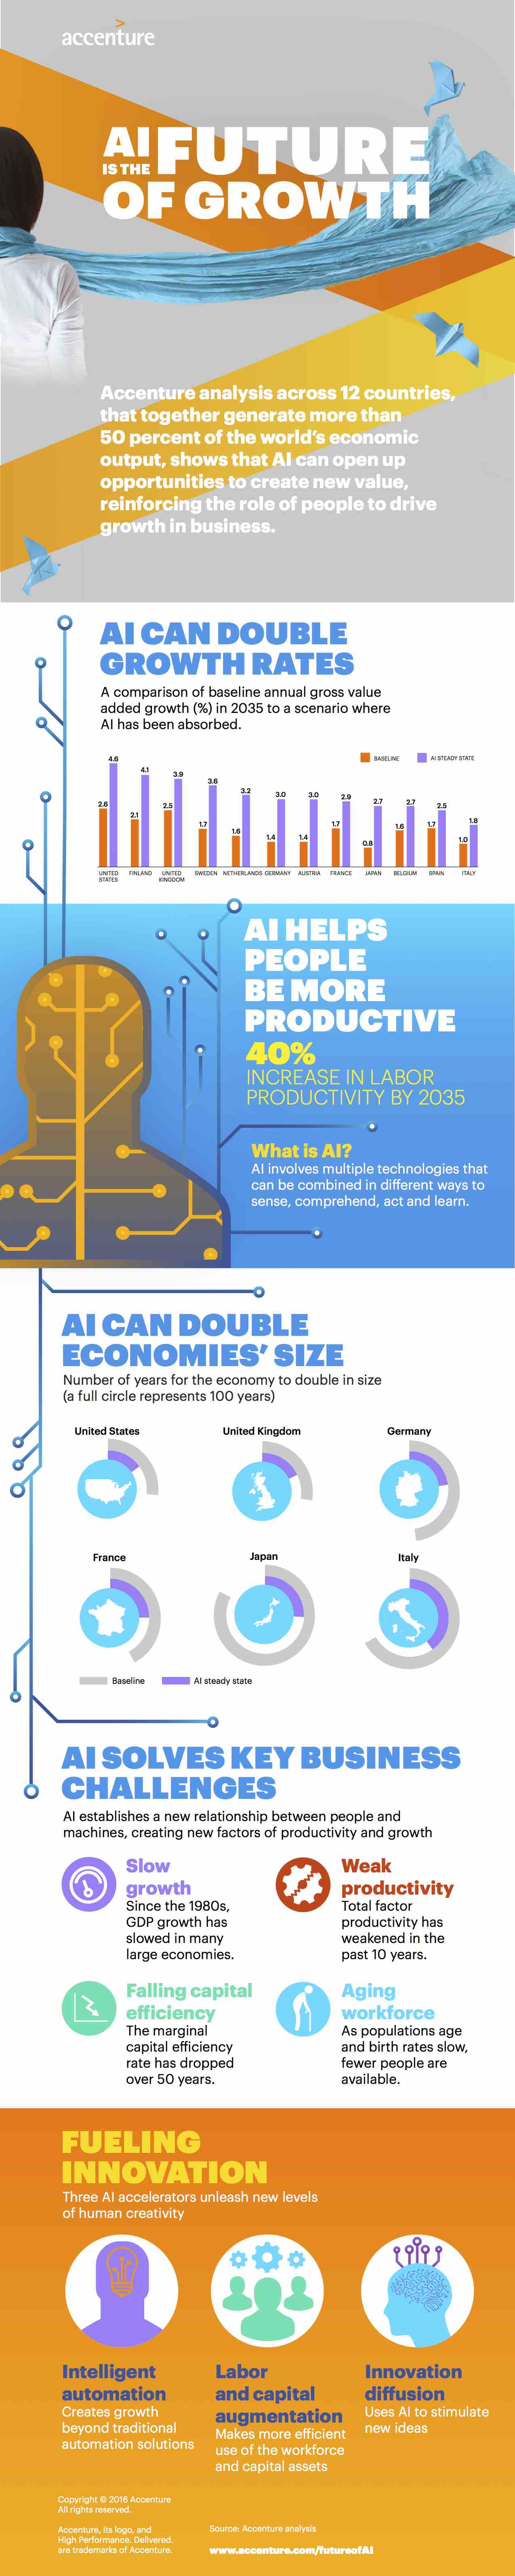 Accenture-AI-Economic-Growth-Infographic